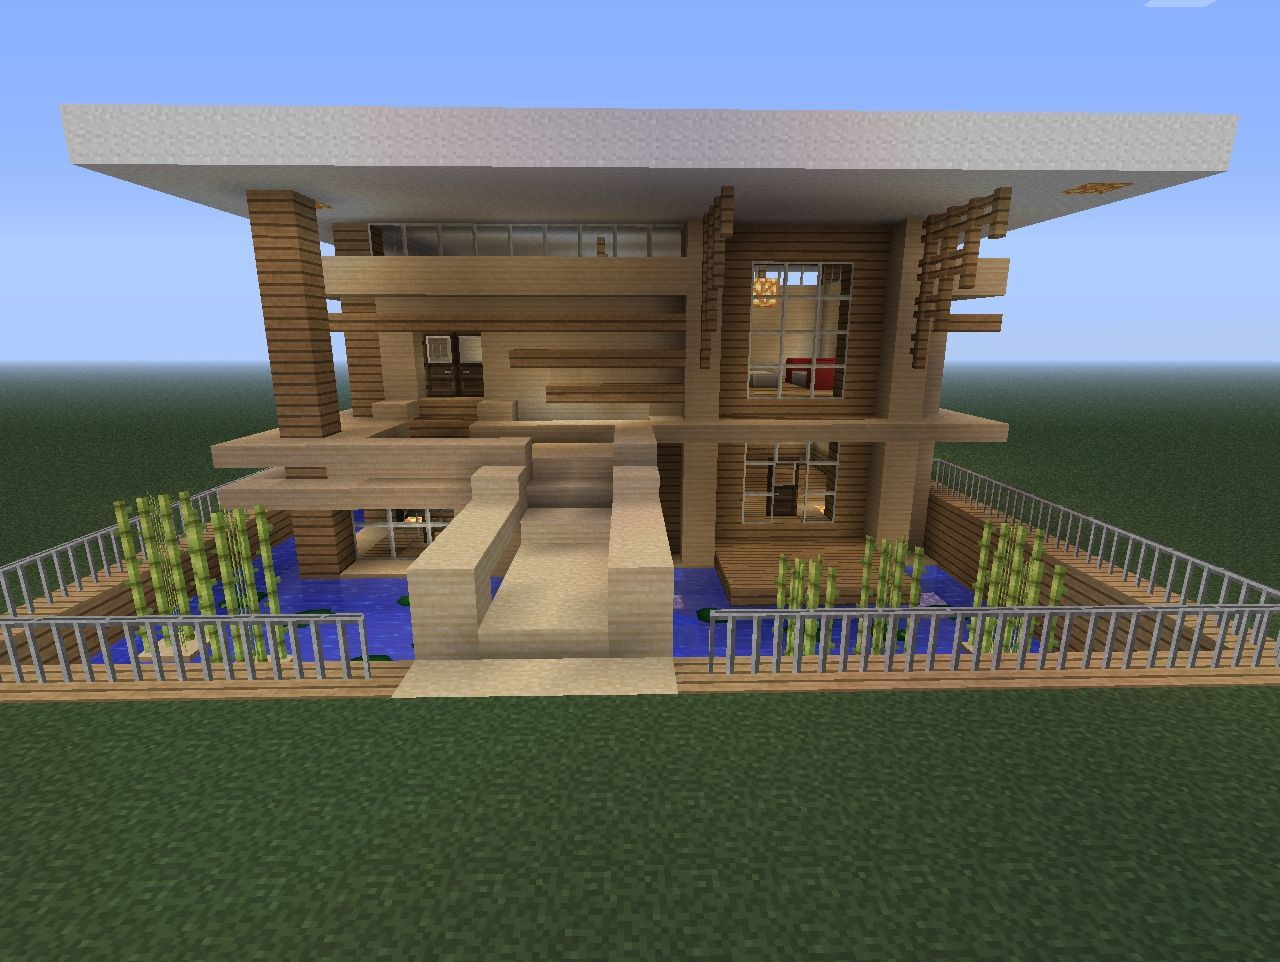 Architecture Houses Minecraft best 10+ minecraft wooden house ideas on pinterest | minecraft